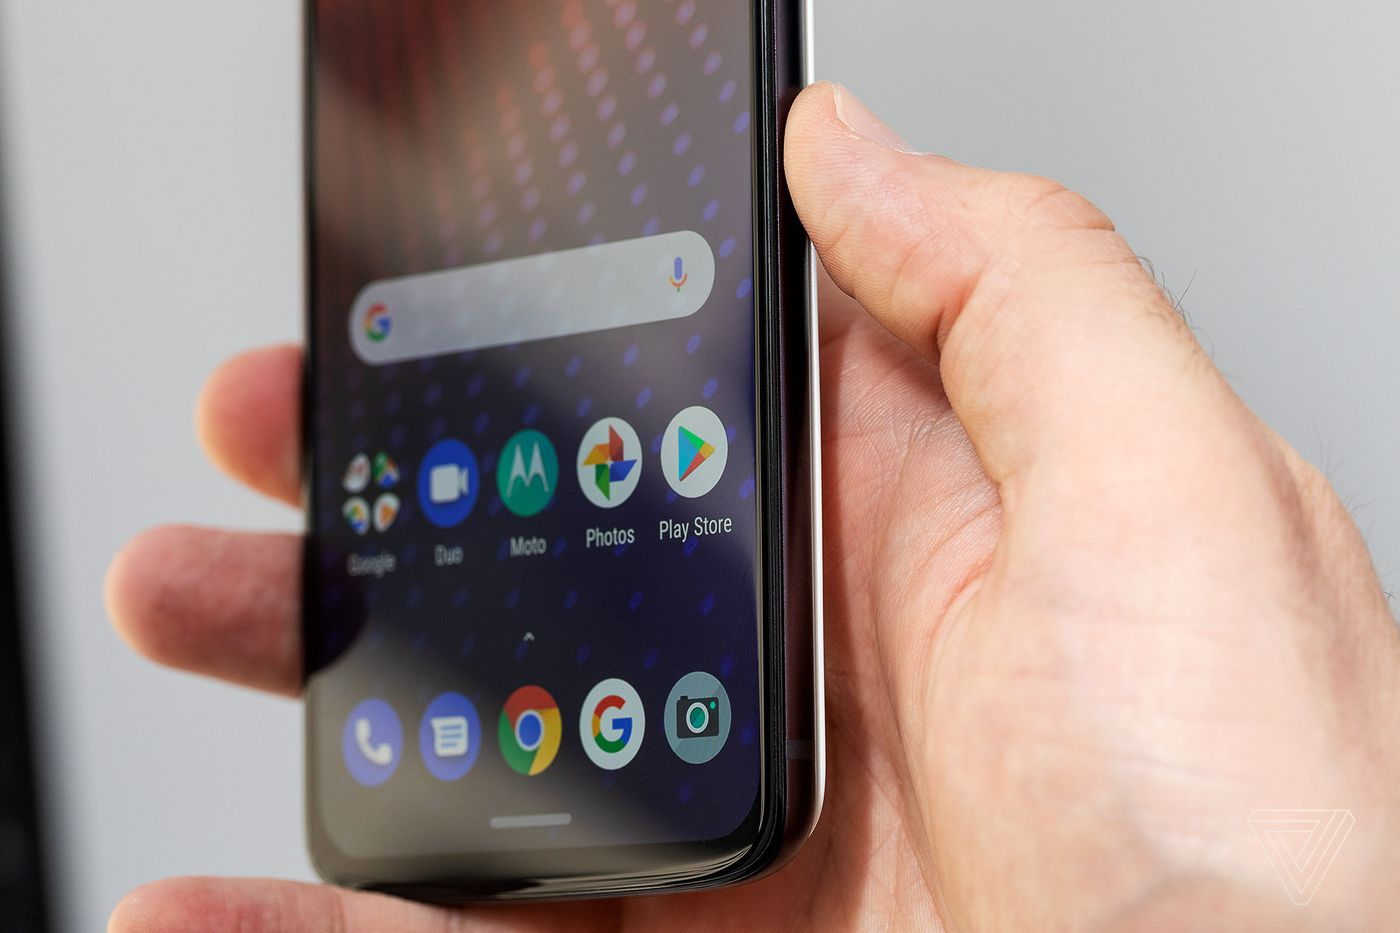 The Moto Z4 has all of the megapixels